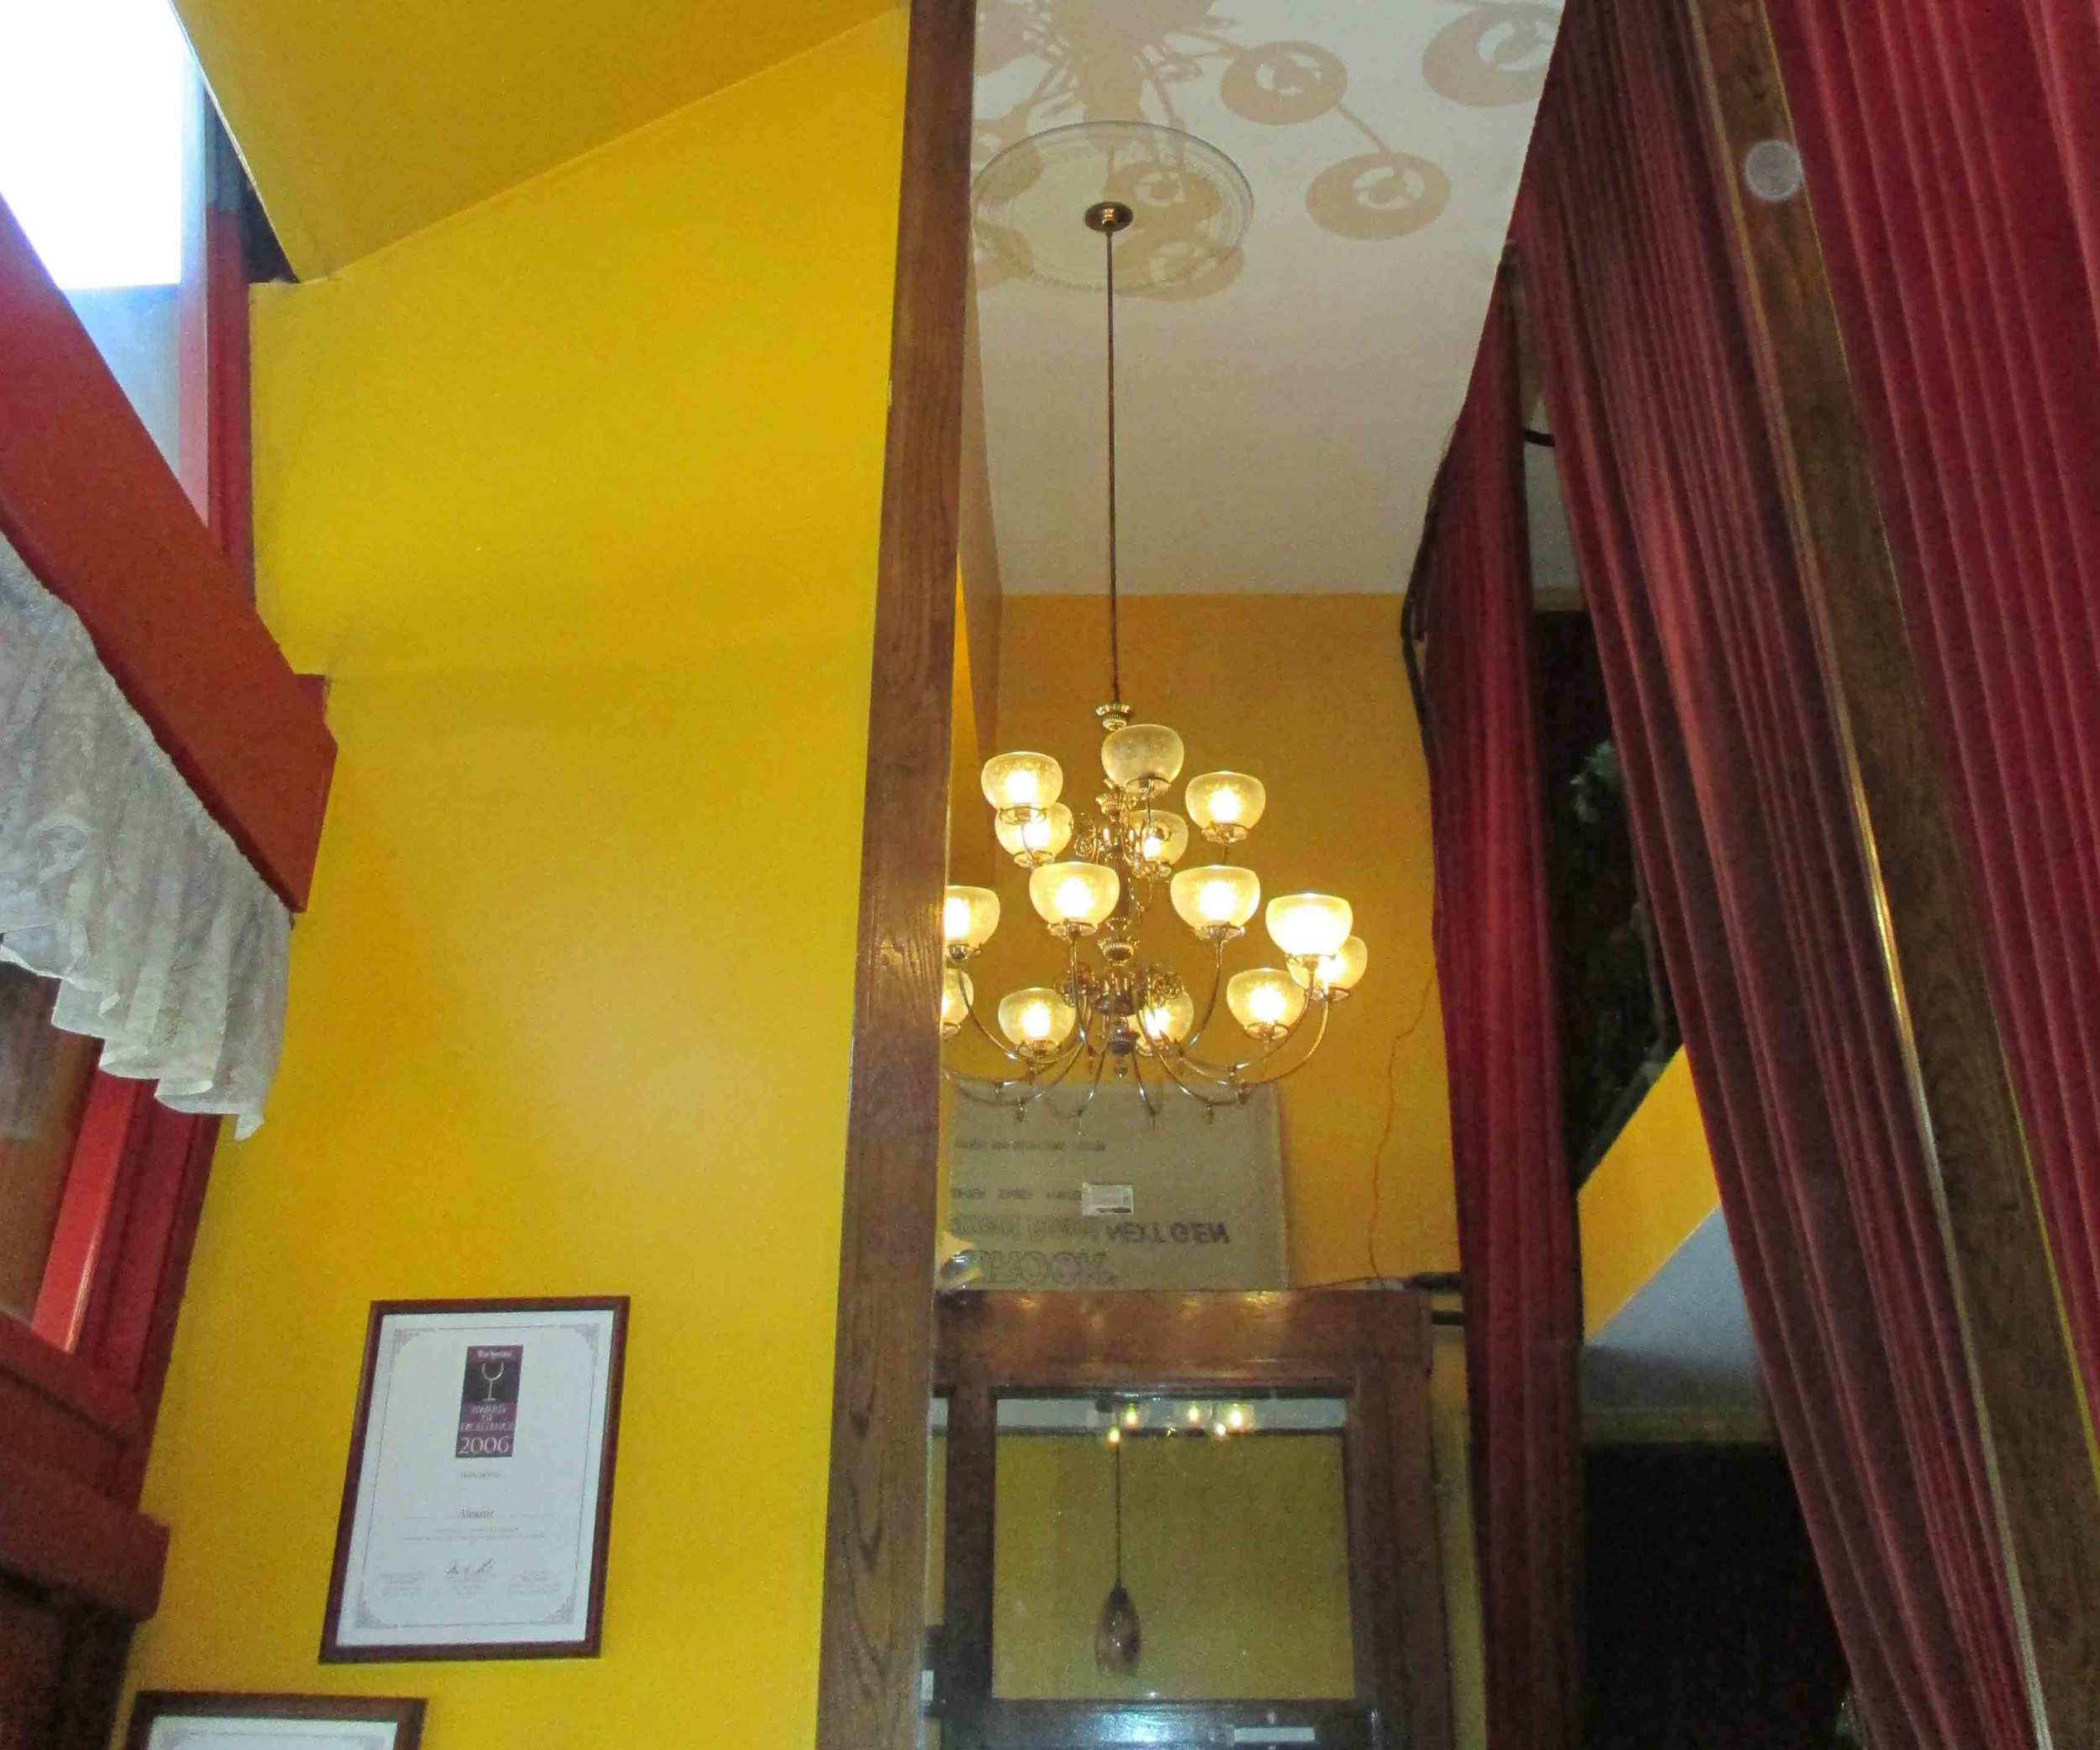 BEFORE: The double height entry space featured bright yellow walls and burgundy curtains.